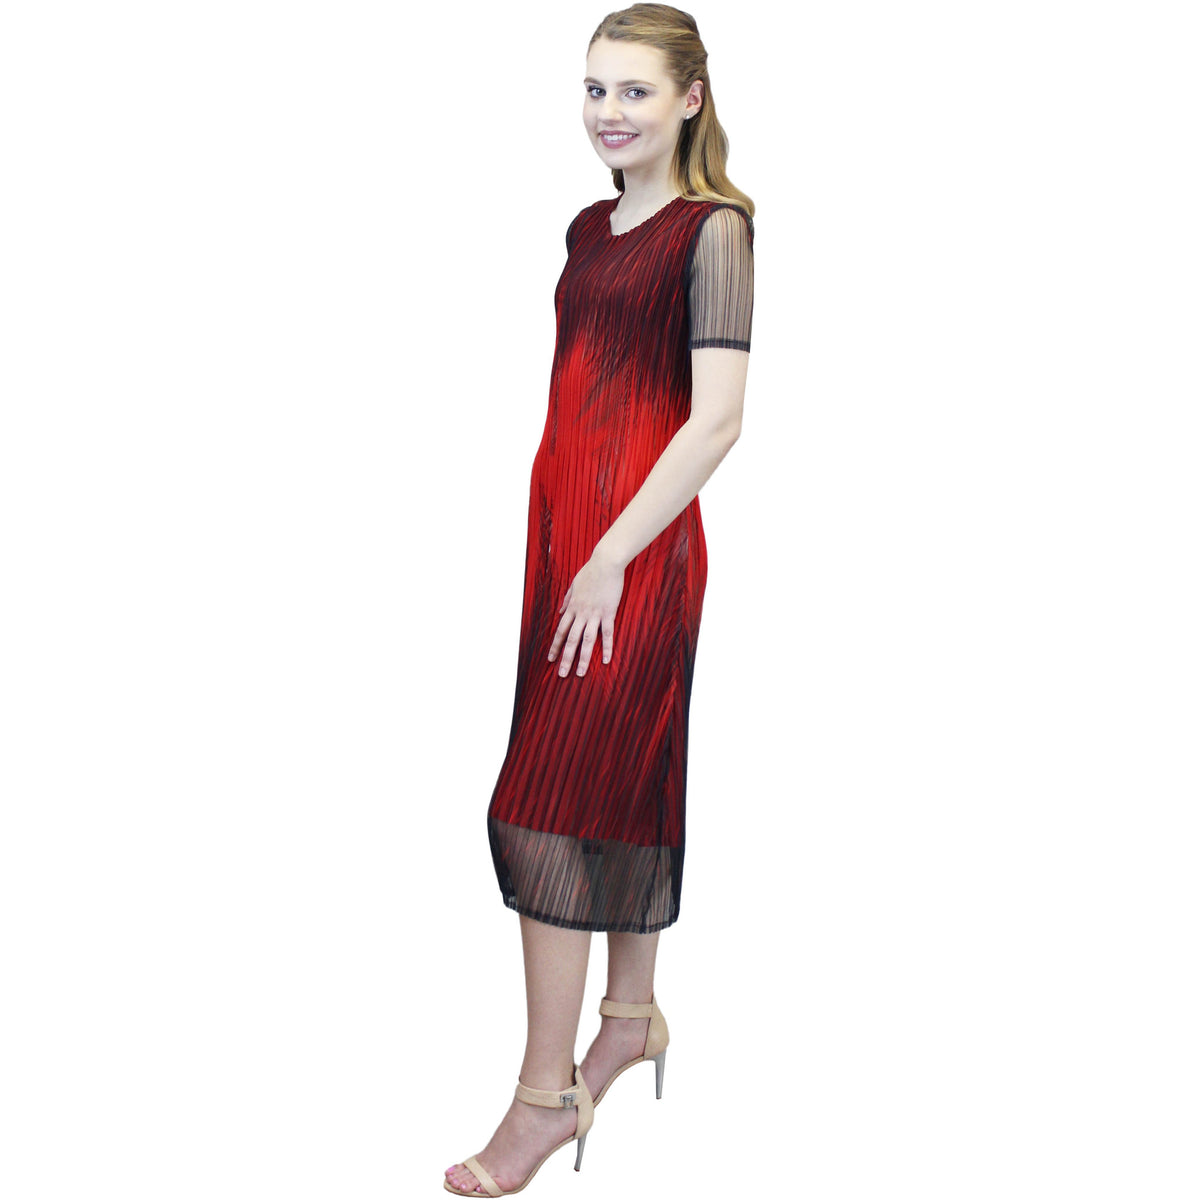 Feather Ombre Crinkle Dress - Red